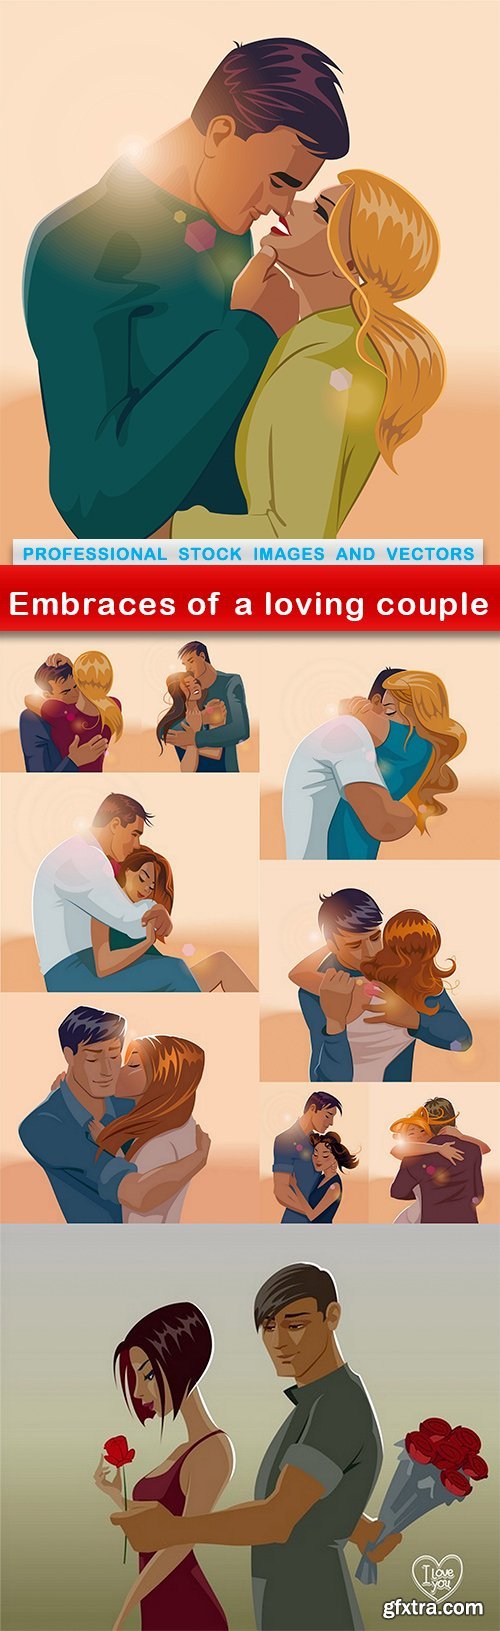 Embraces of a loving couple - 10 EPS